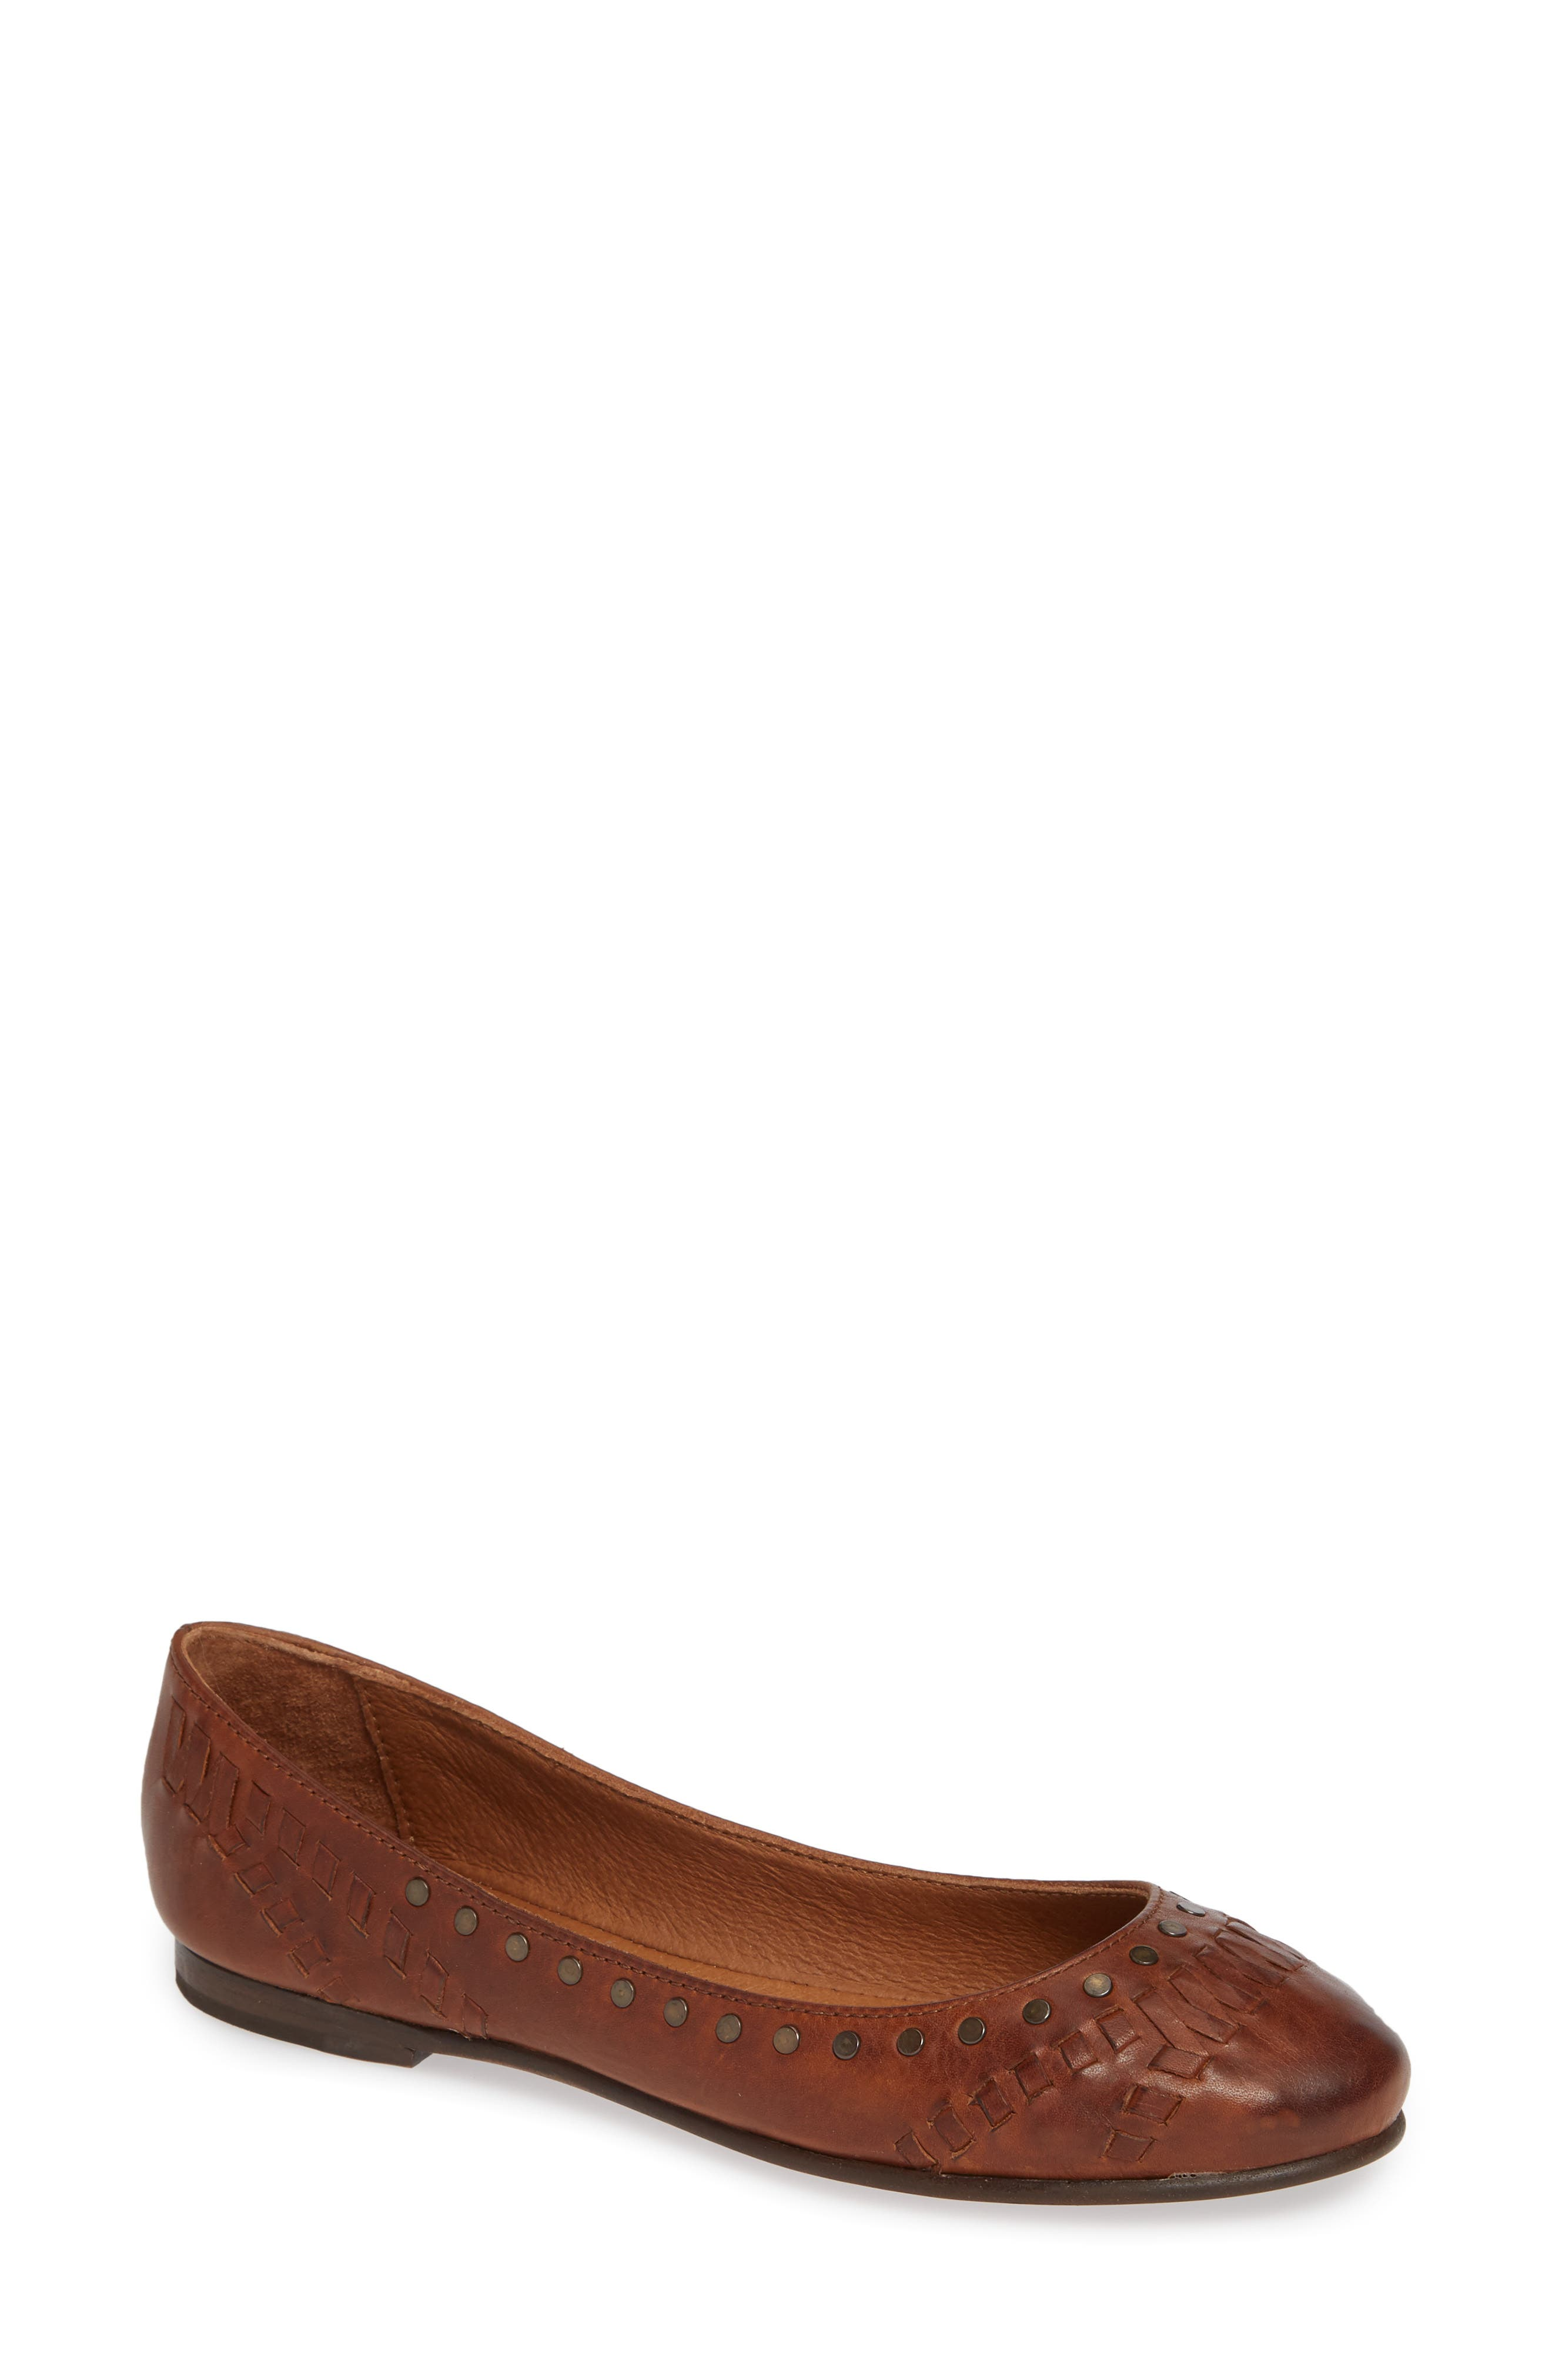 Carson Whipstitch Ballet Flat,                         Main,                         color, COGNAC LEATHER